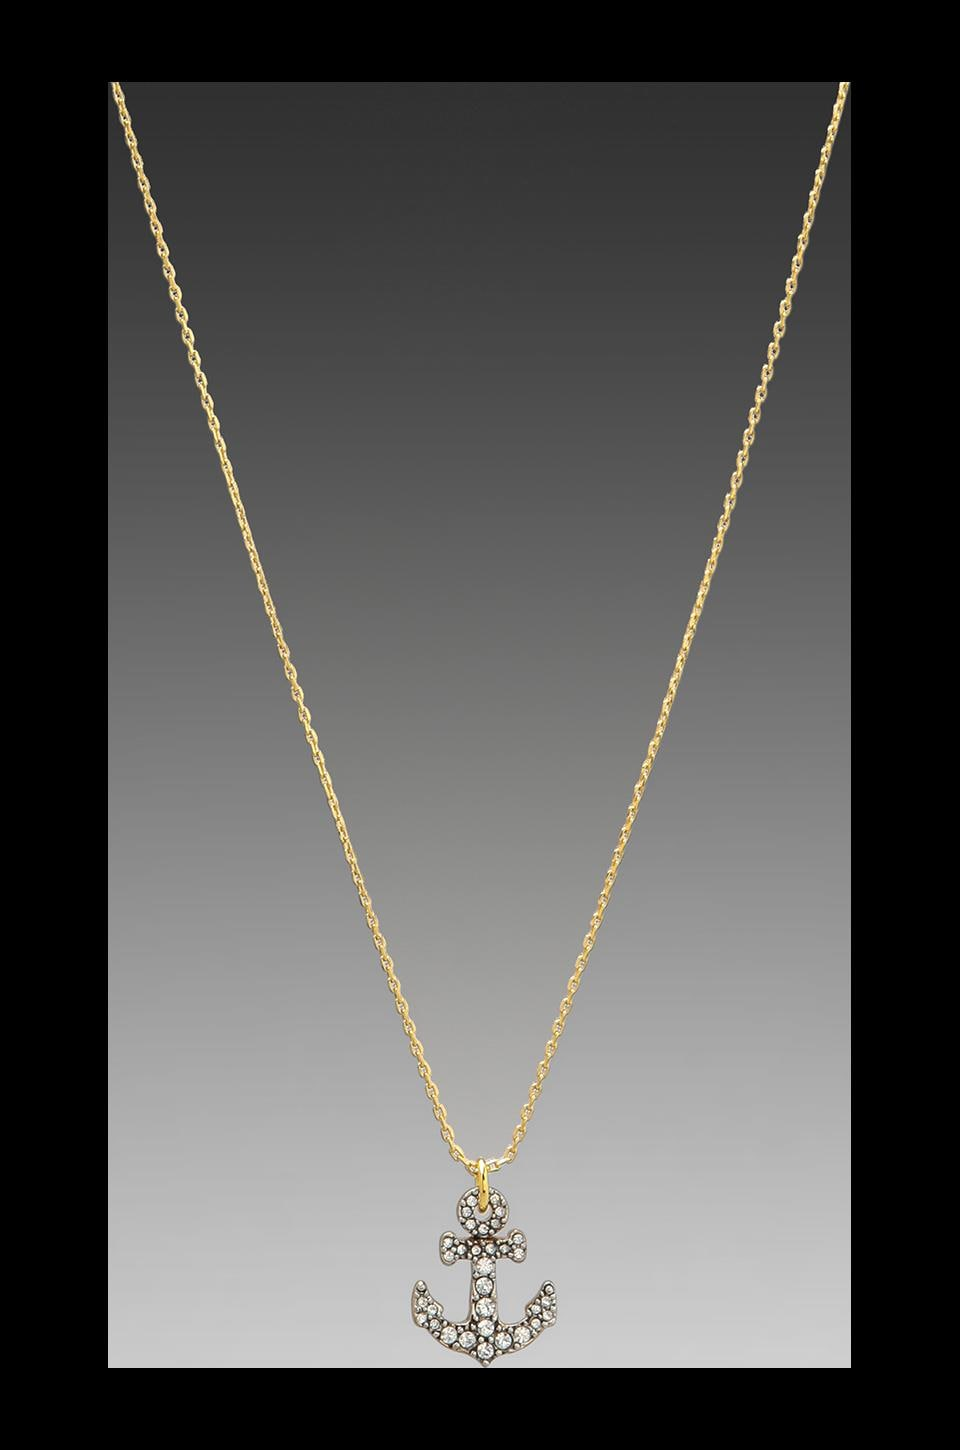 Juicy Couture Pave Anchor Wish Necklace in Gold